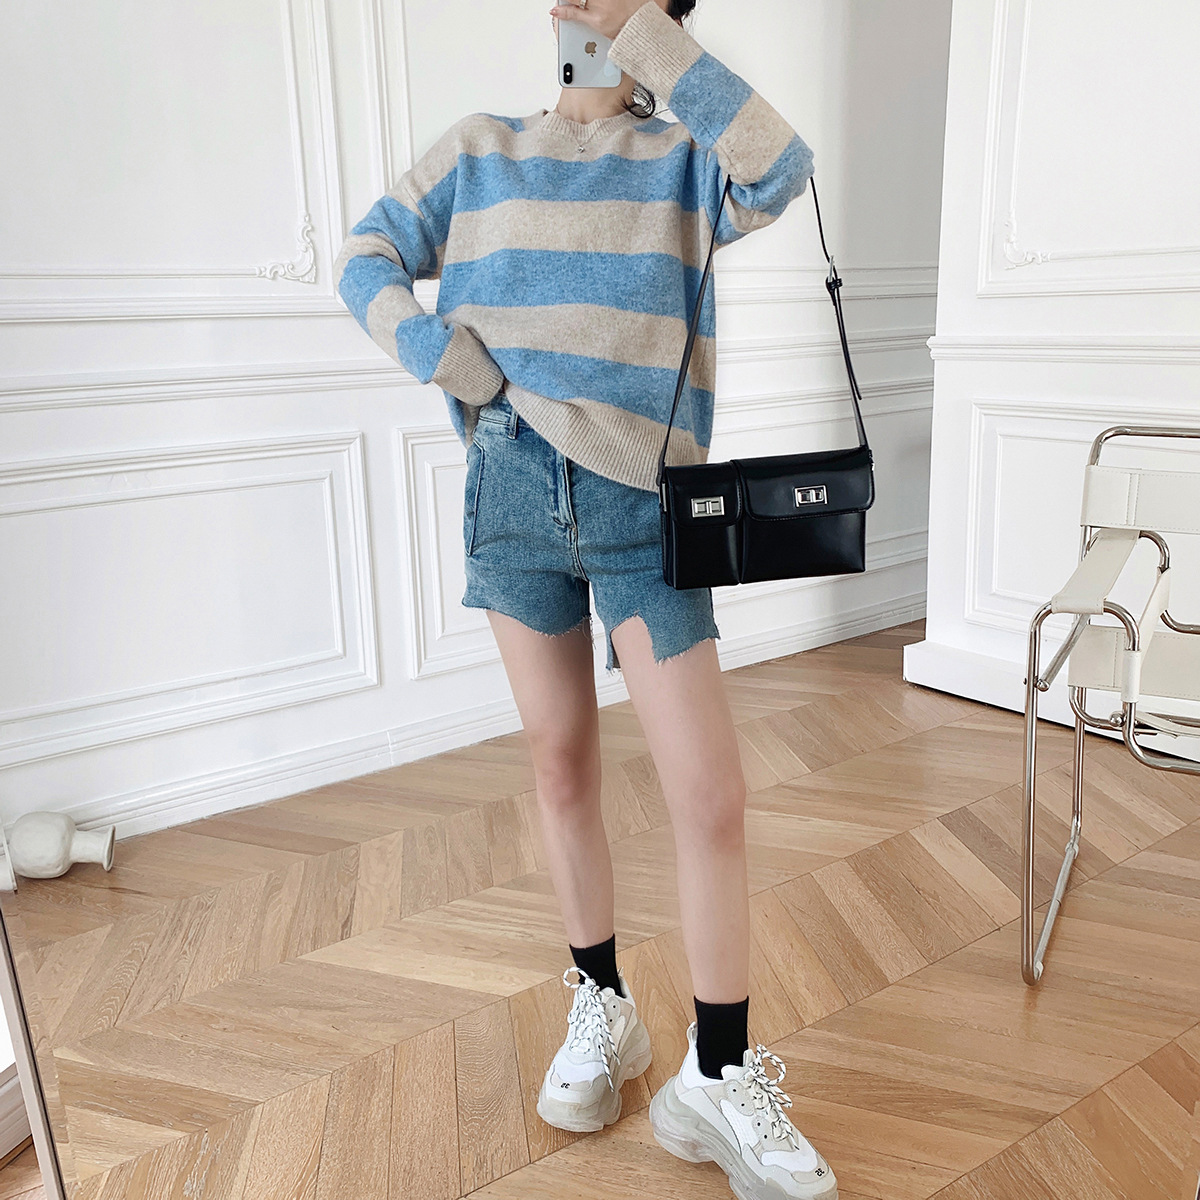 Fall 2020 new top women B languid mohair wool blended knitwear horizontal sweater womens Pullover